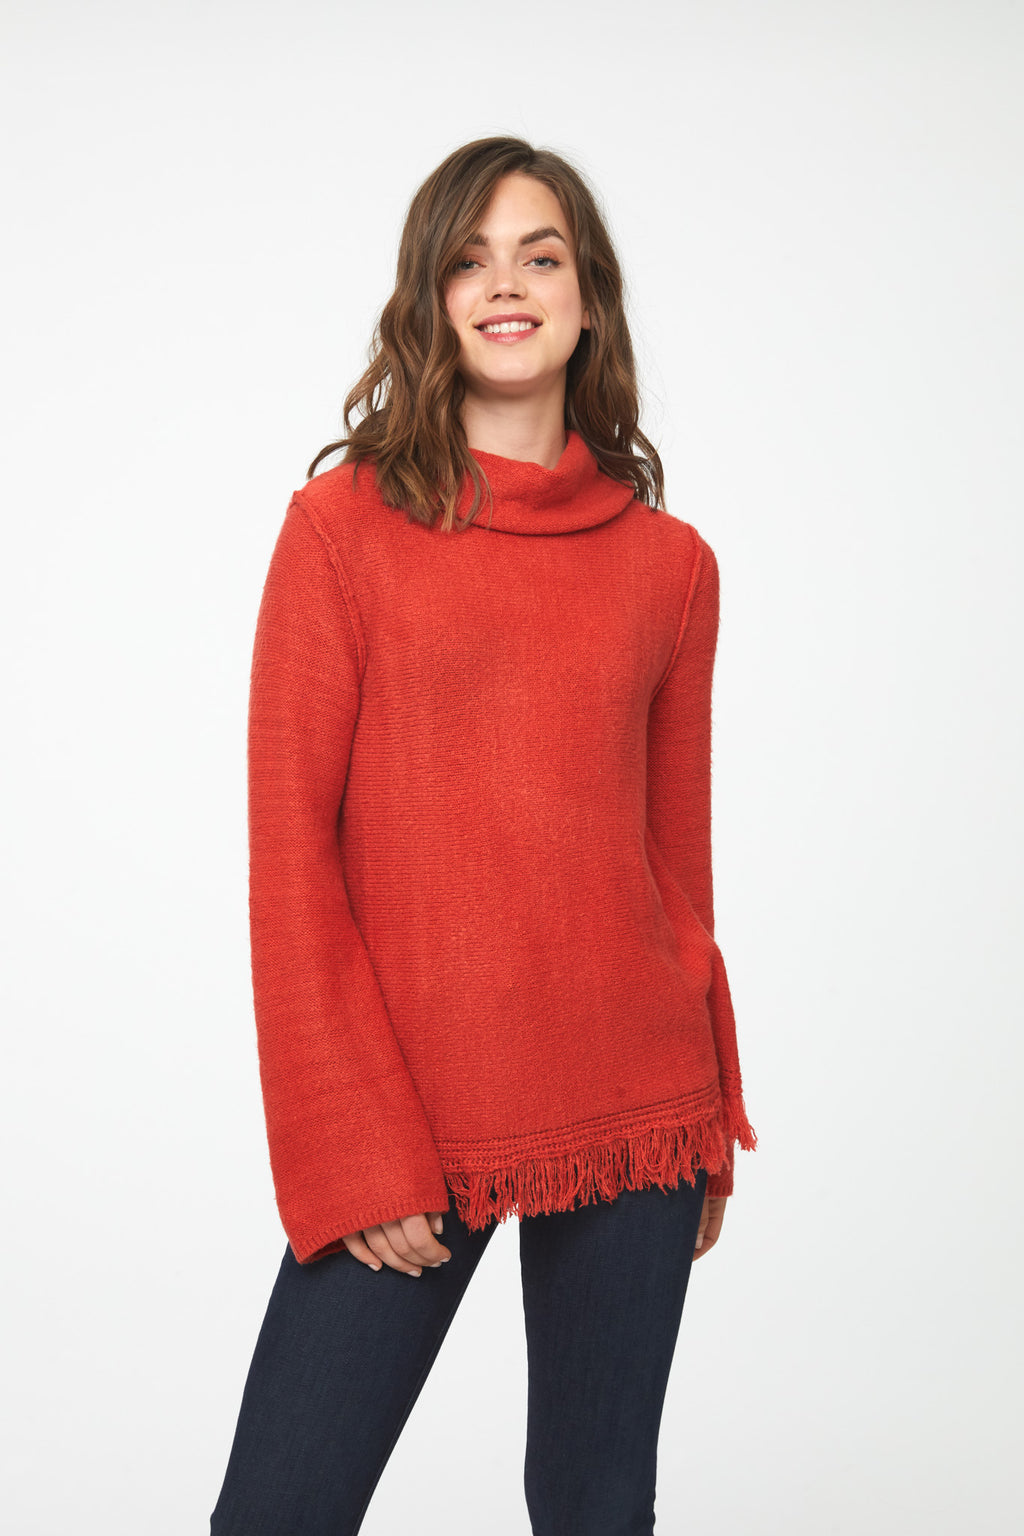 SEDONA SWEATER - RUST